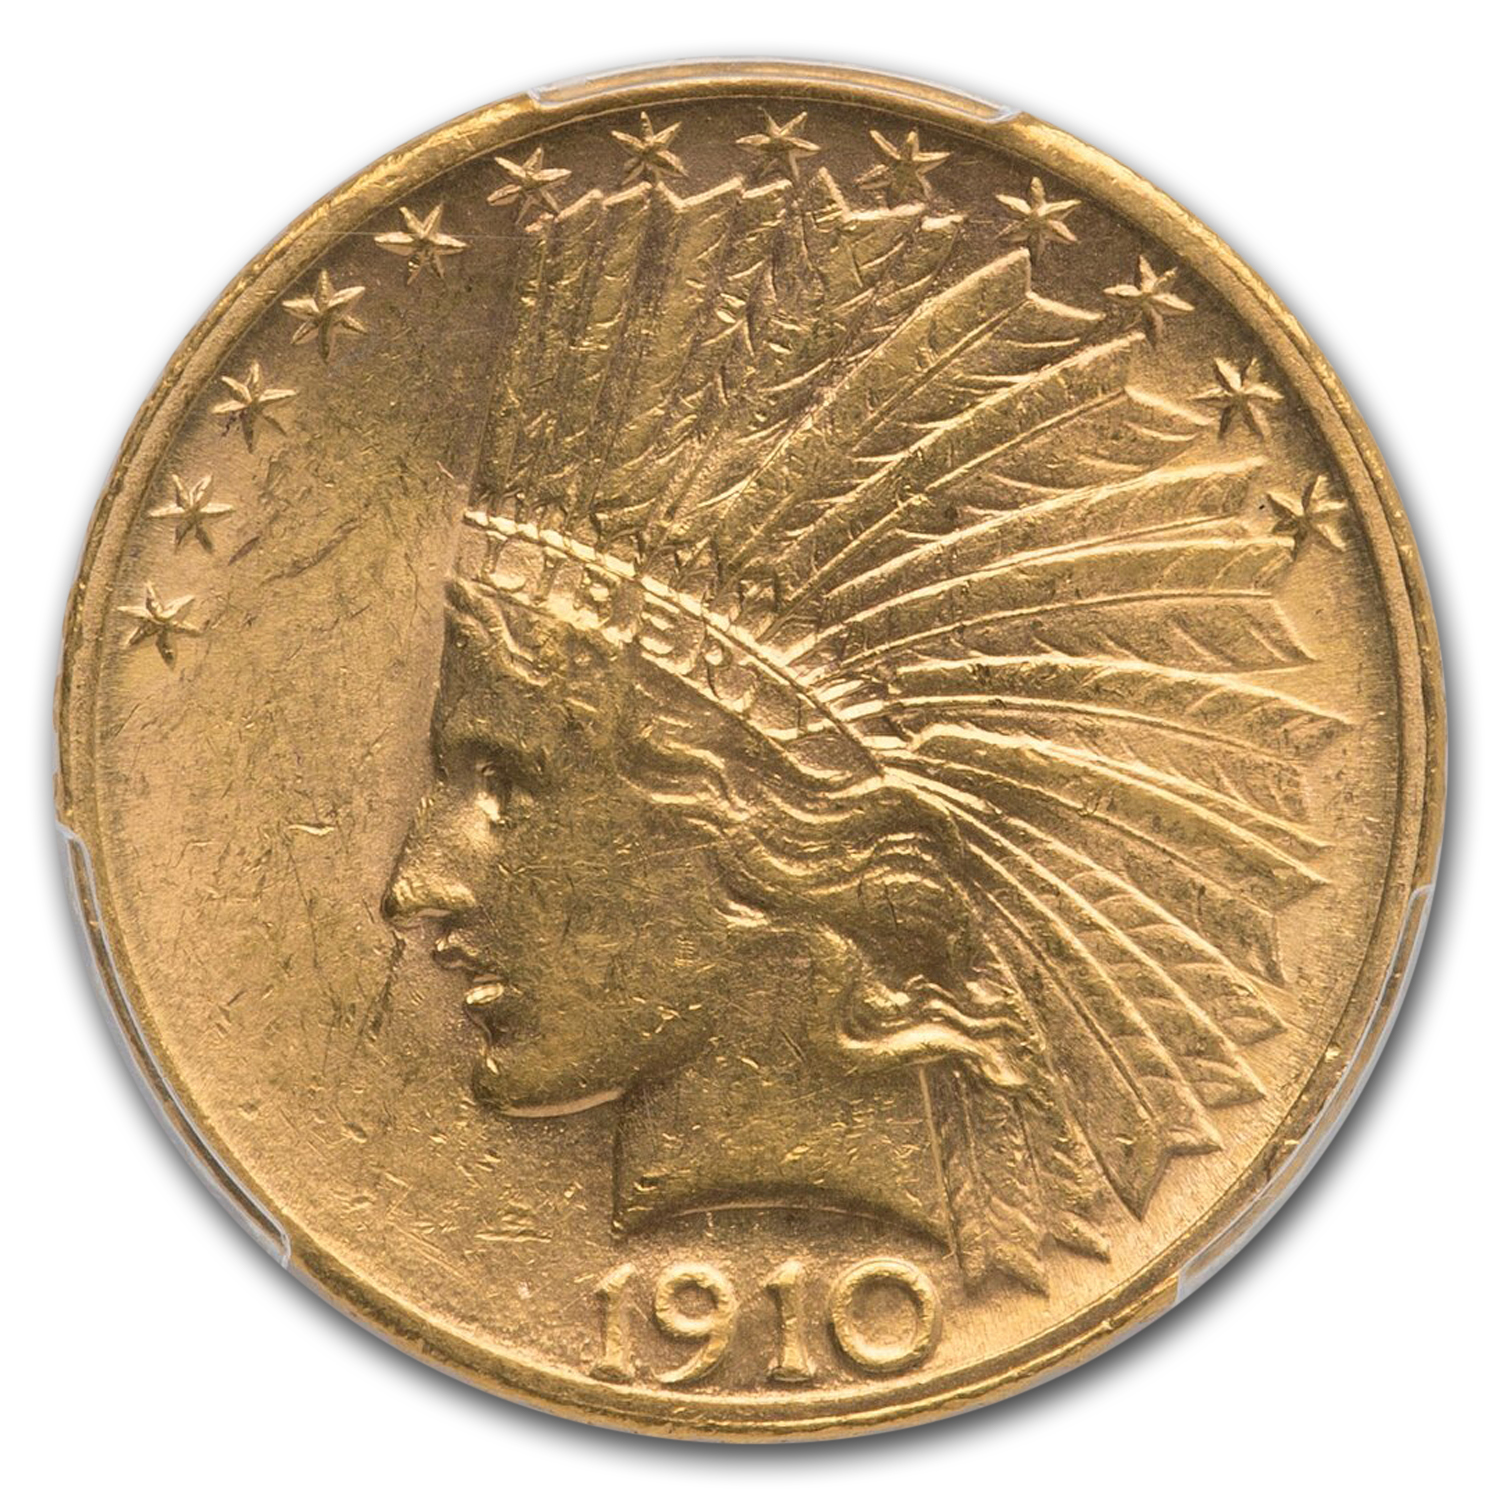 1910-S $10 Indian Gold Eagle AU-58 PCGS